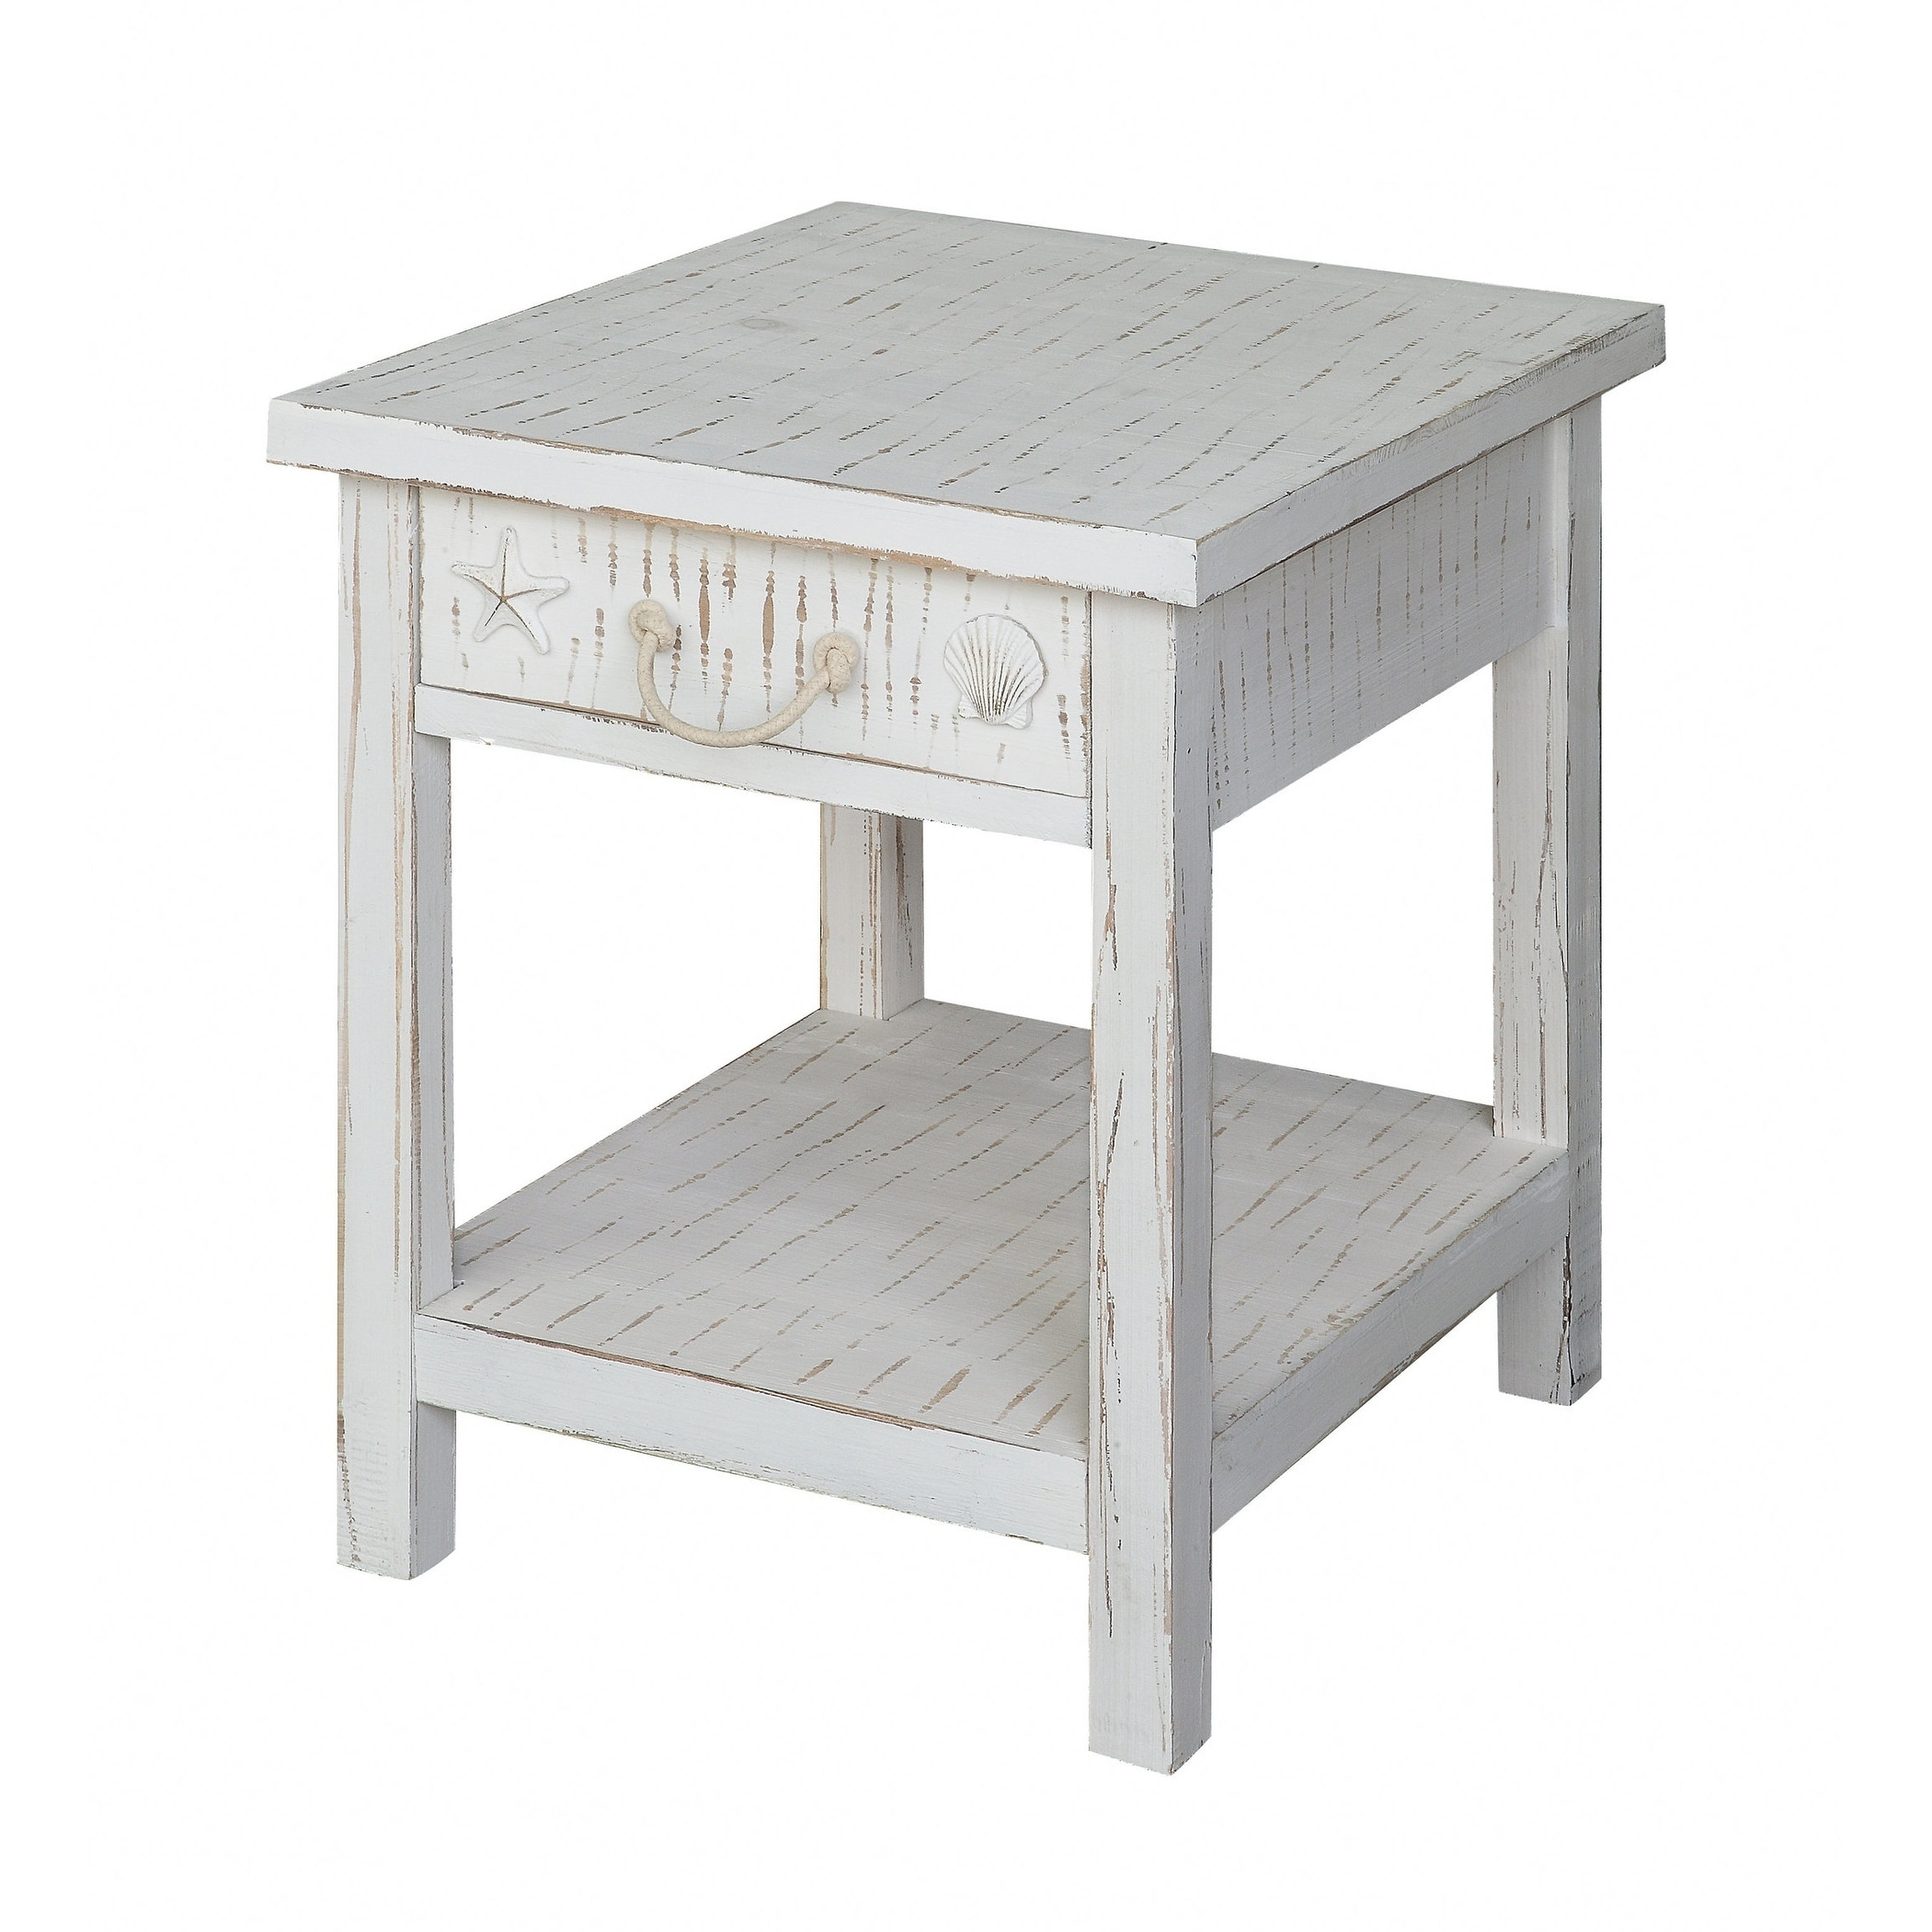 seaside white coastal end table free shipping today tables small space living room the wolf creek kmart outdoor settings huntington bedroom furniture liberty distributors kaden